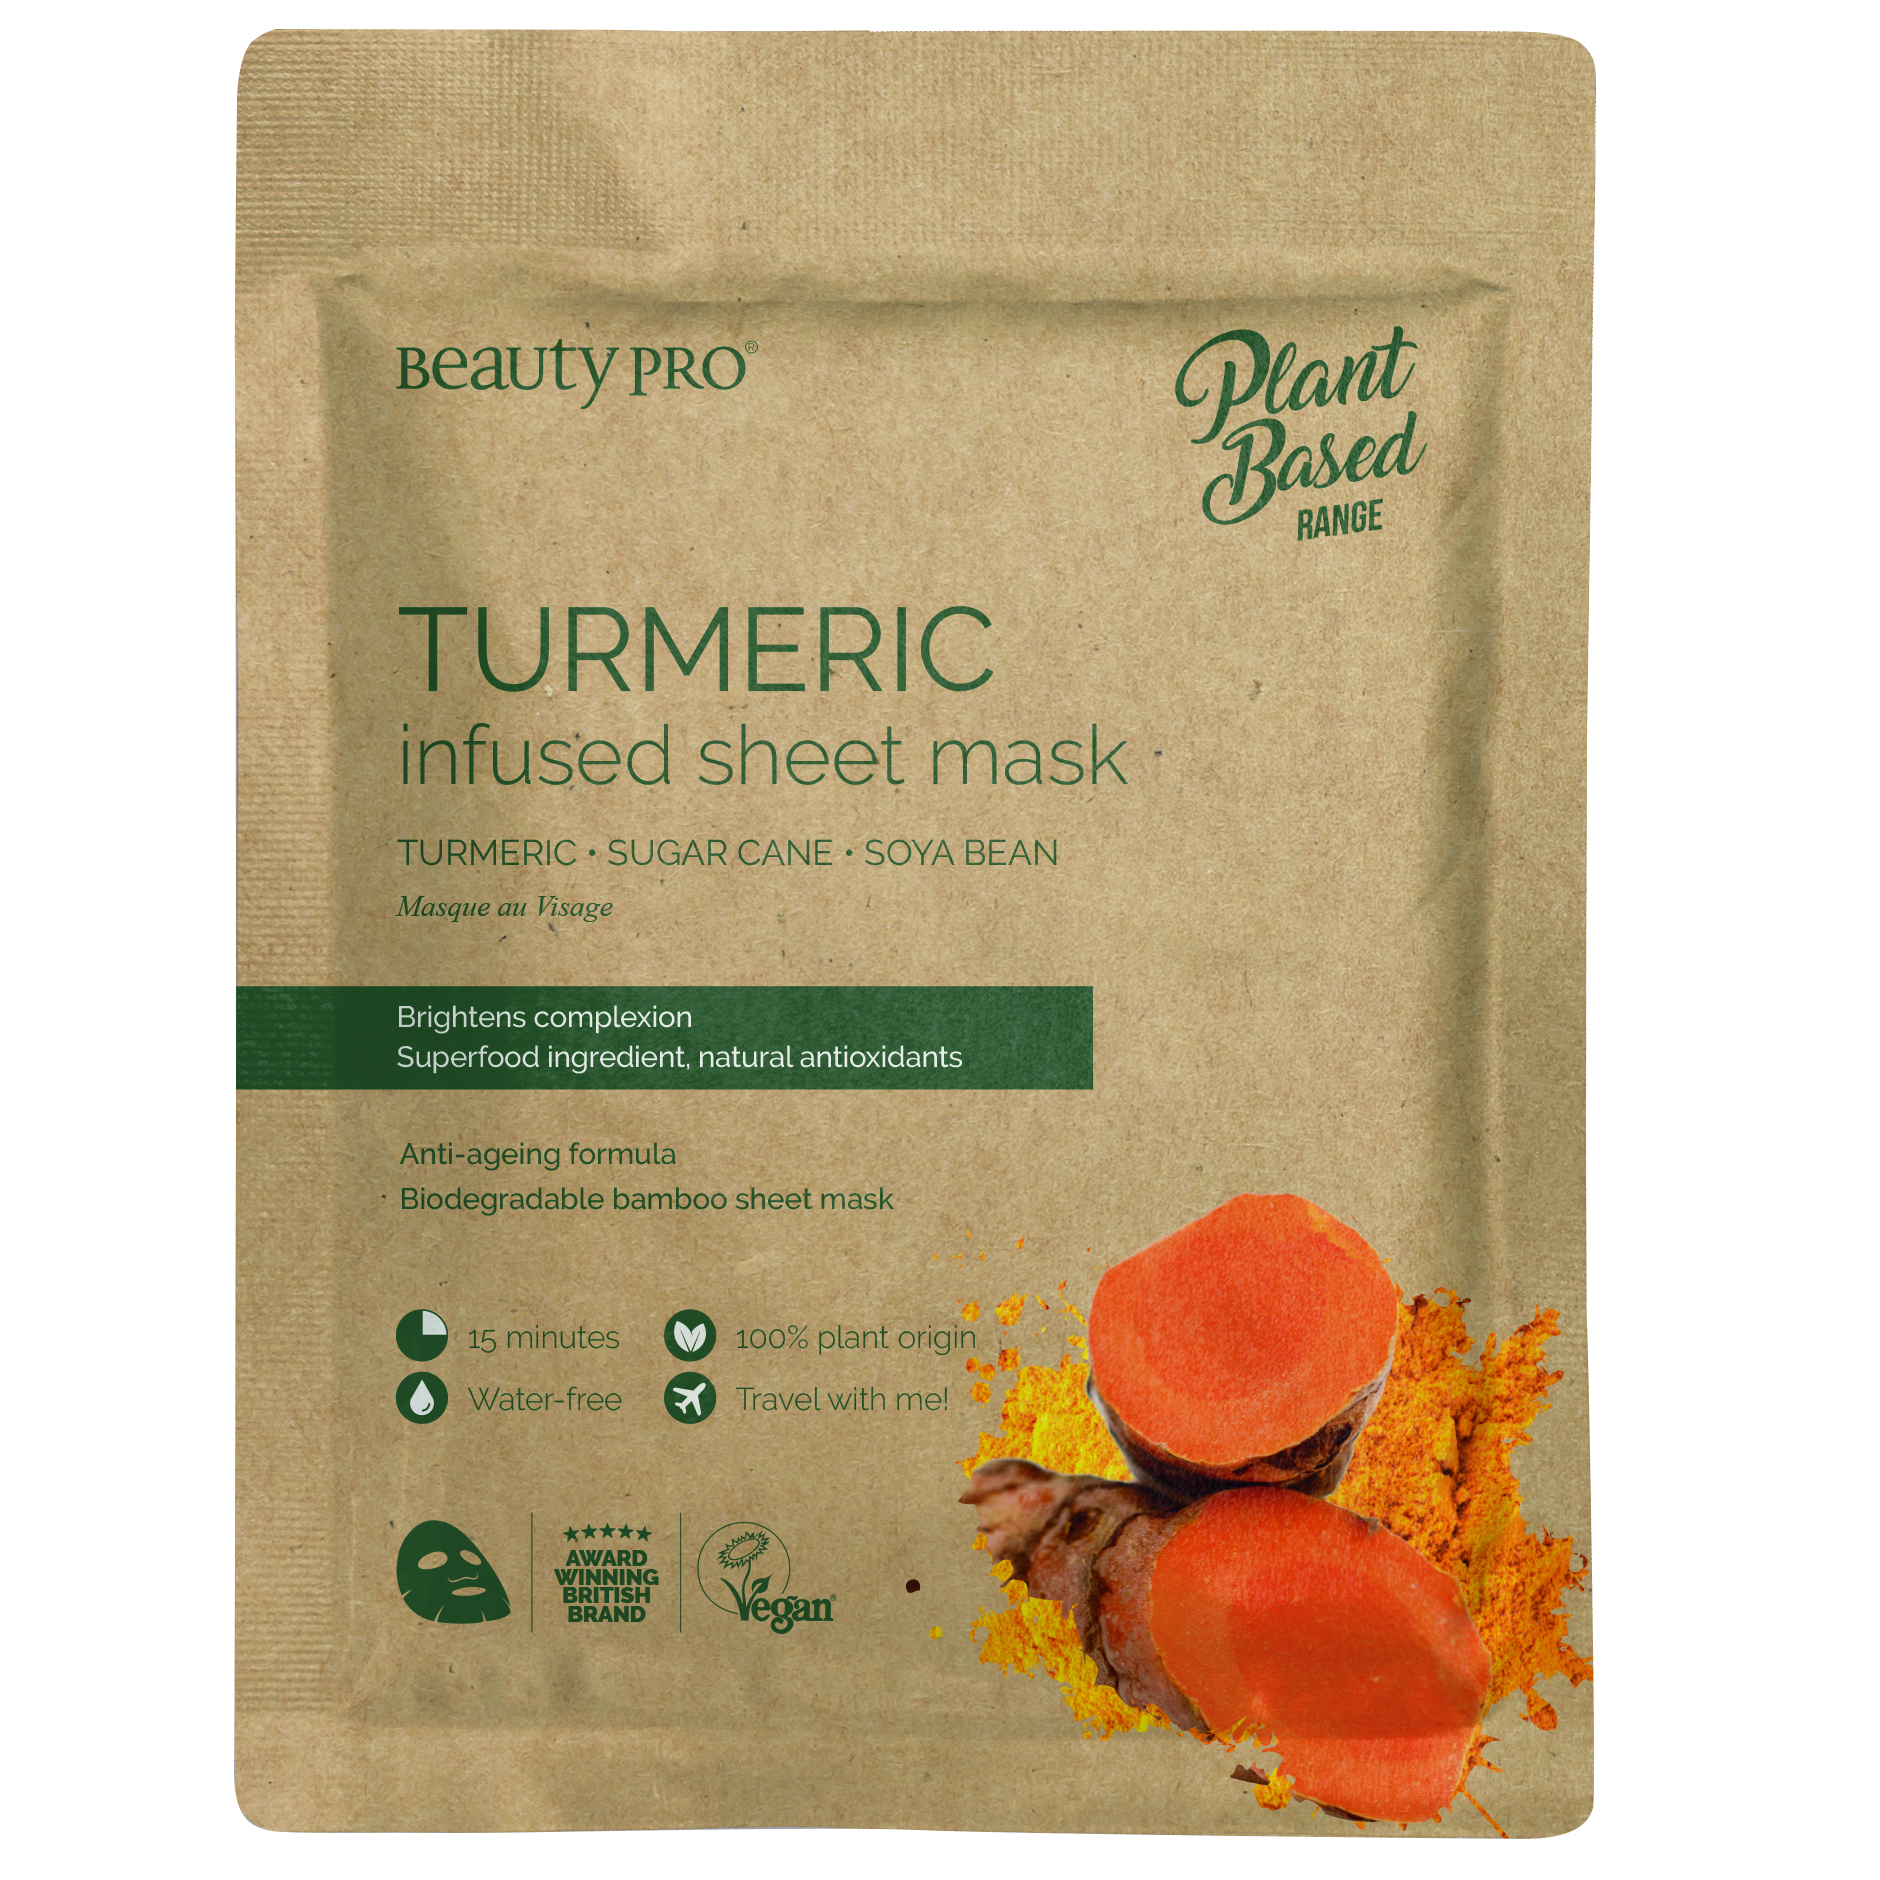 TUMERIC Infused Sheet Mask 22ml